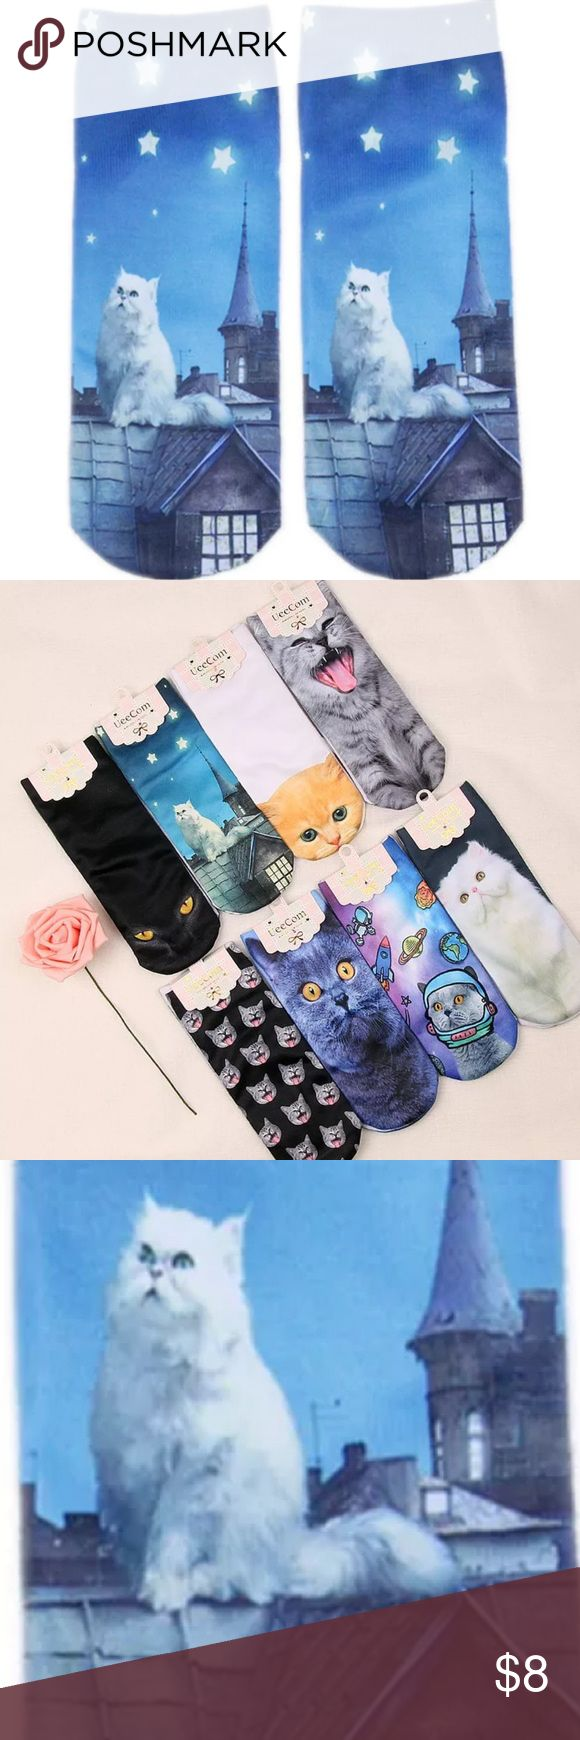 """Super cute kitty socks Super cute KITTY print socks  Brand new great quality will make such  A great gift 🎁 or happy feet ❤️  Material spandex NWT Size:(L*W) 7 x2"""" available in other designs price per sock   🛍BUNDLE & SAVE 15%🛍 ✨TOP RATED SELLER✨ 📦SAME DAY OR NEXT DAY SHIPPING!📦 ❤REASONABLE OFFERS WELCOME❤ ❌NO TRADES OR PAYPAL❌ Accessories Hosiery & Socks"""